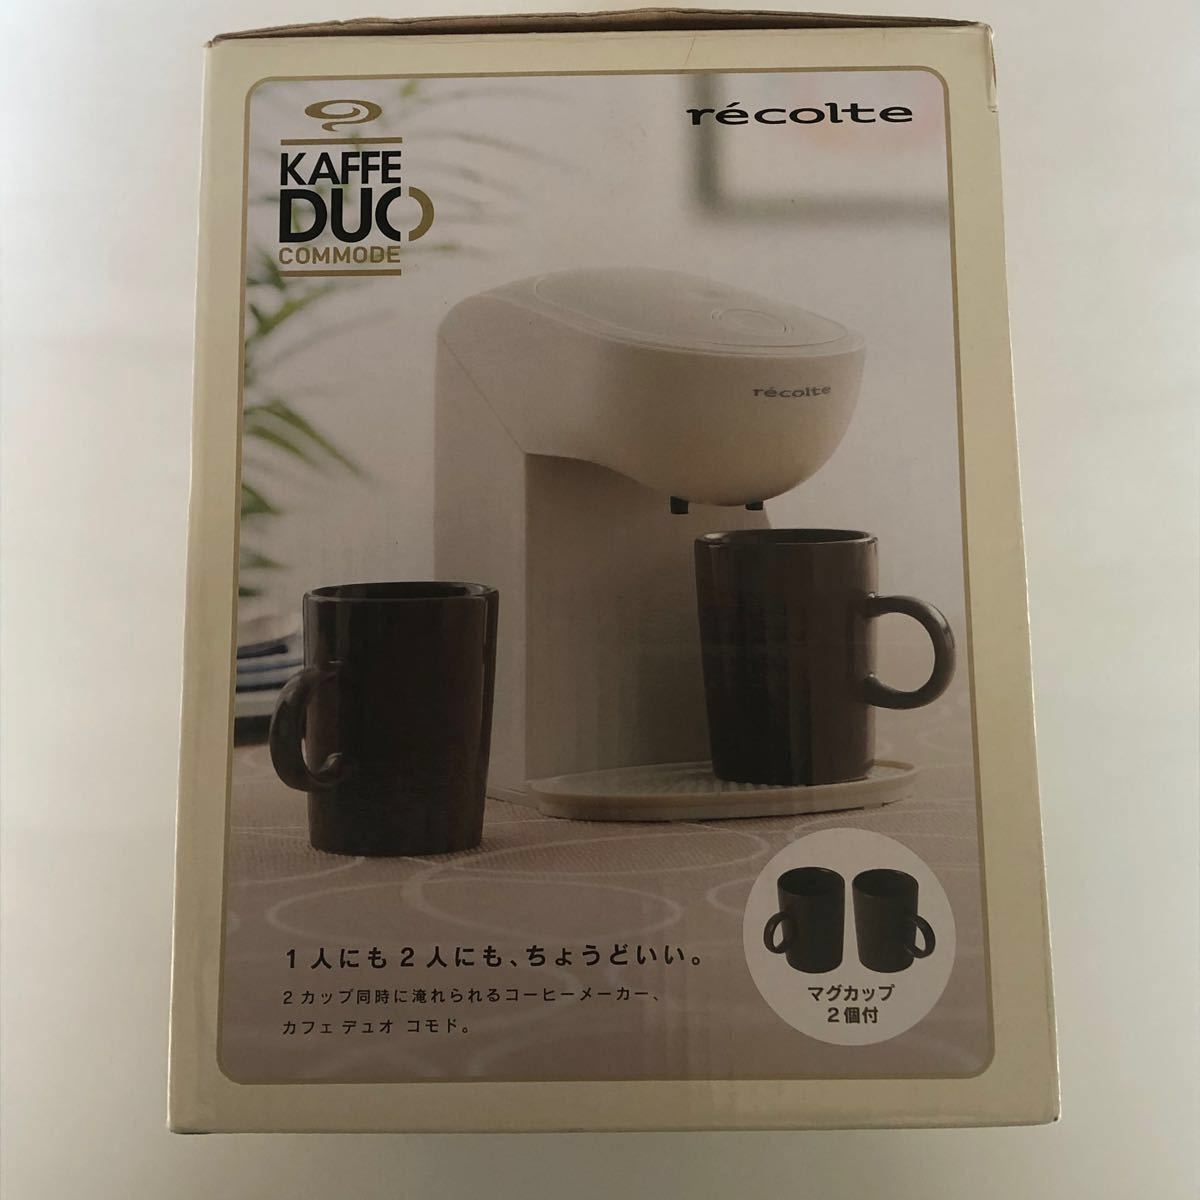 新品★kaffe duo recolte commodeコーヒーメーカー★未使用